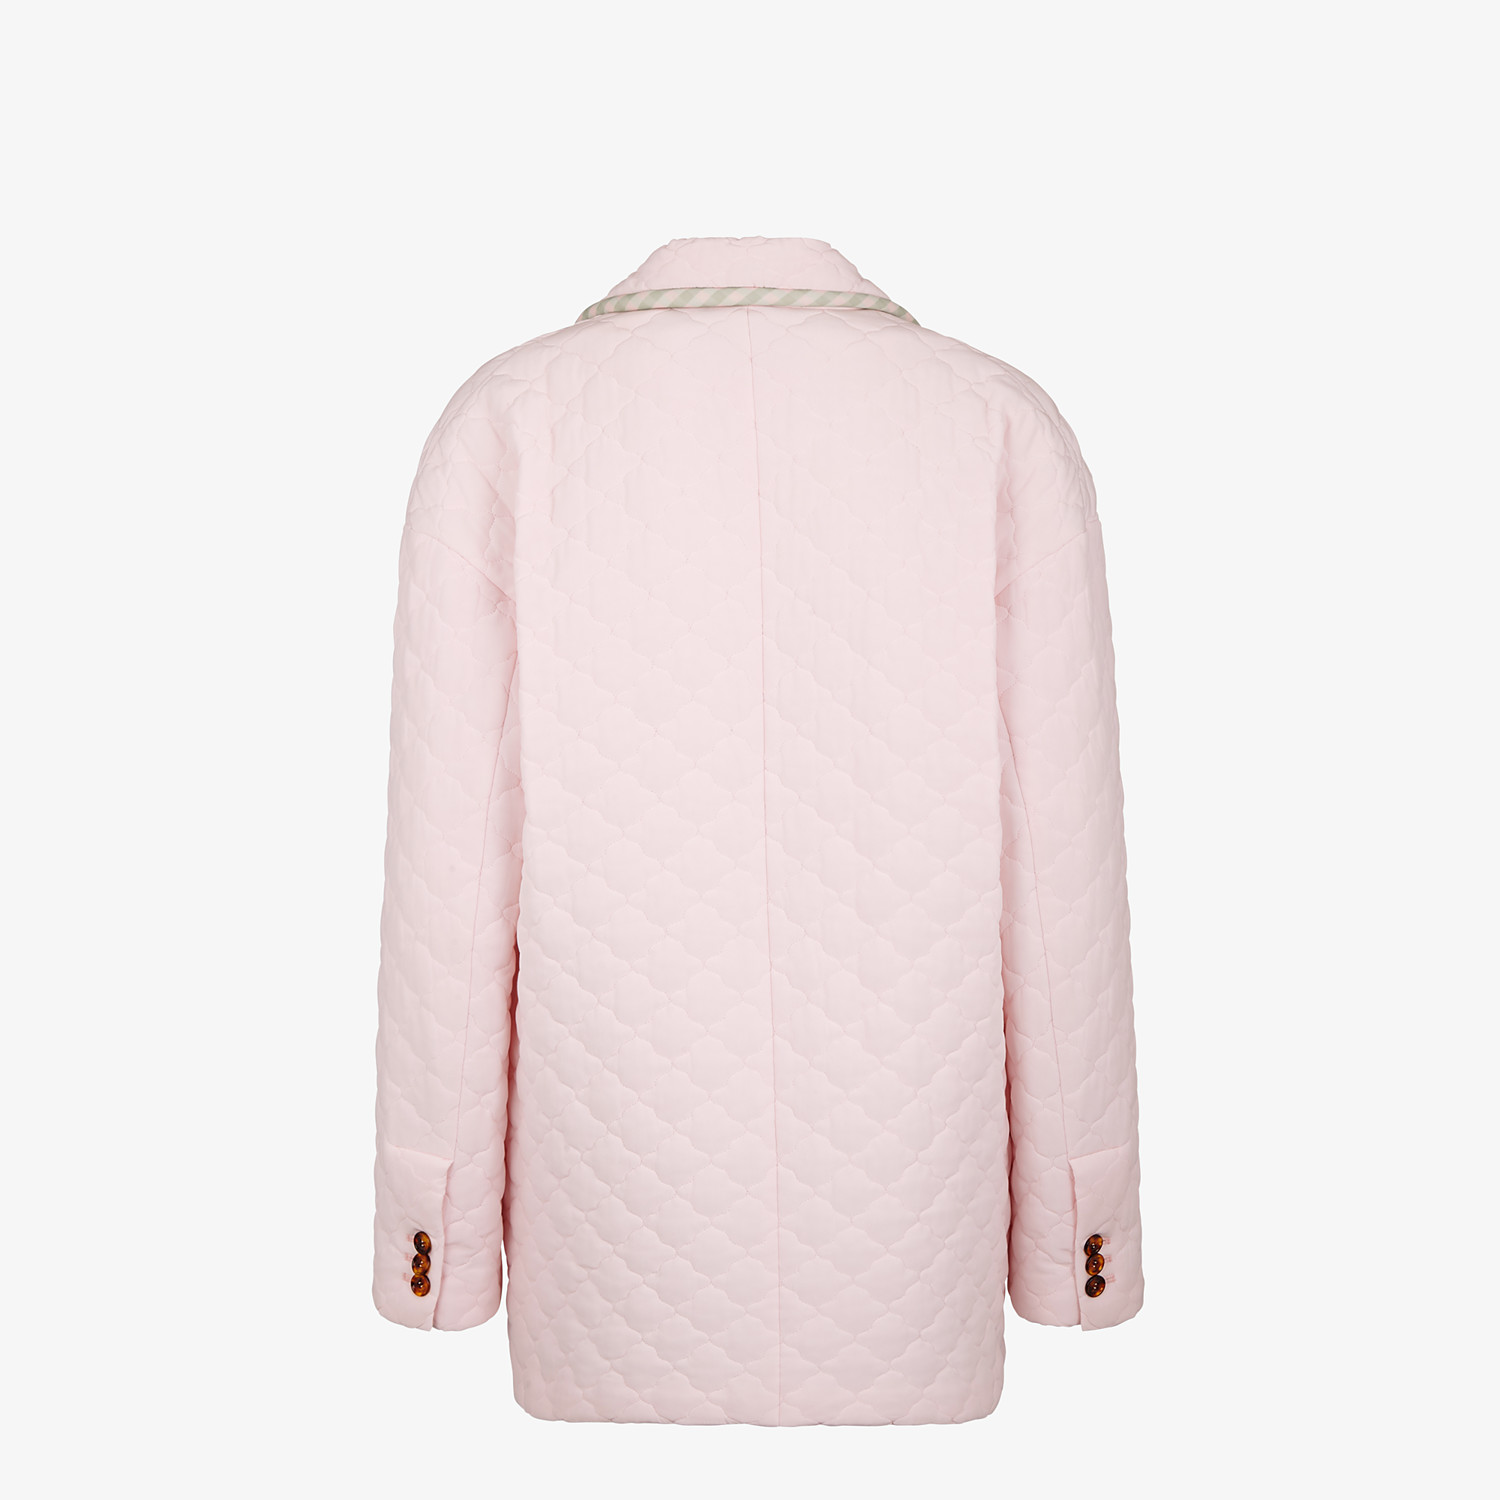 FENDI JACKET - Pink quilted crêpe de chine jacket - view 2 detail